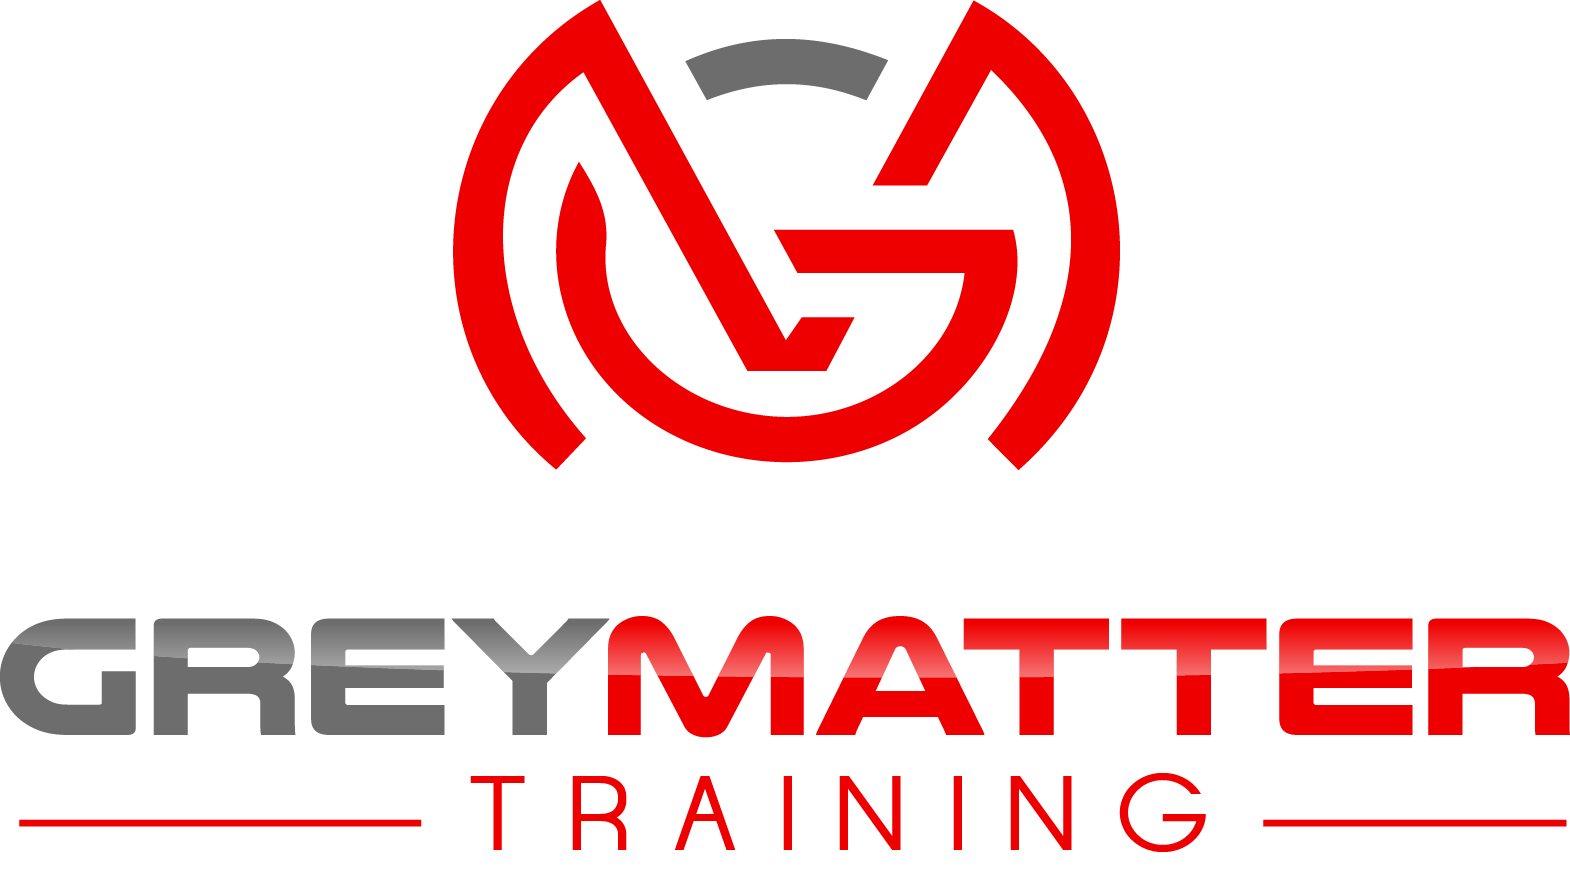 GreyMatter Training